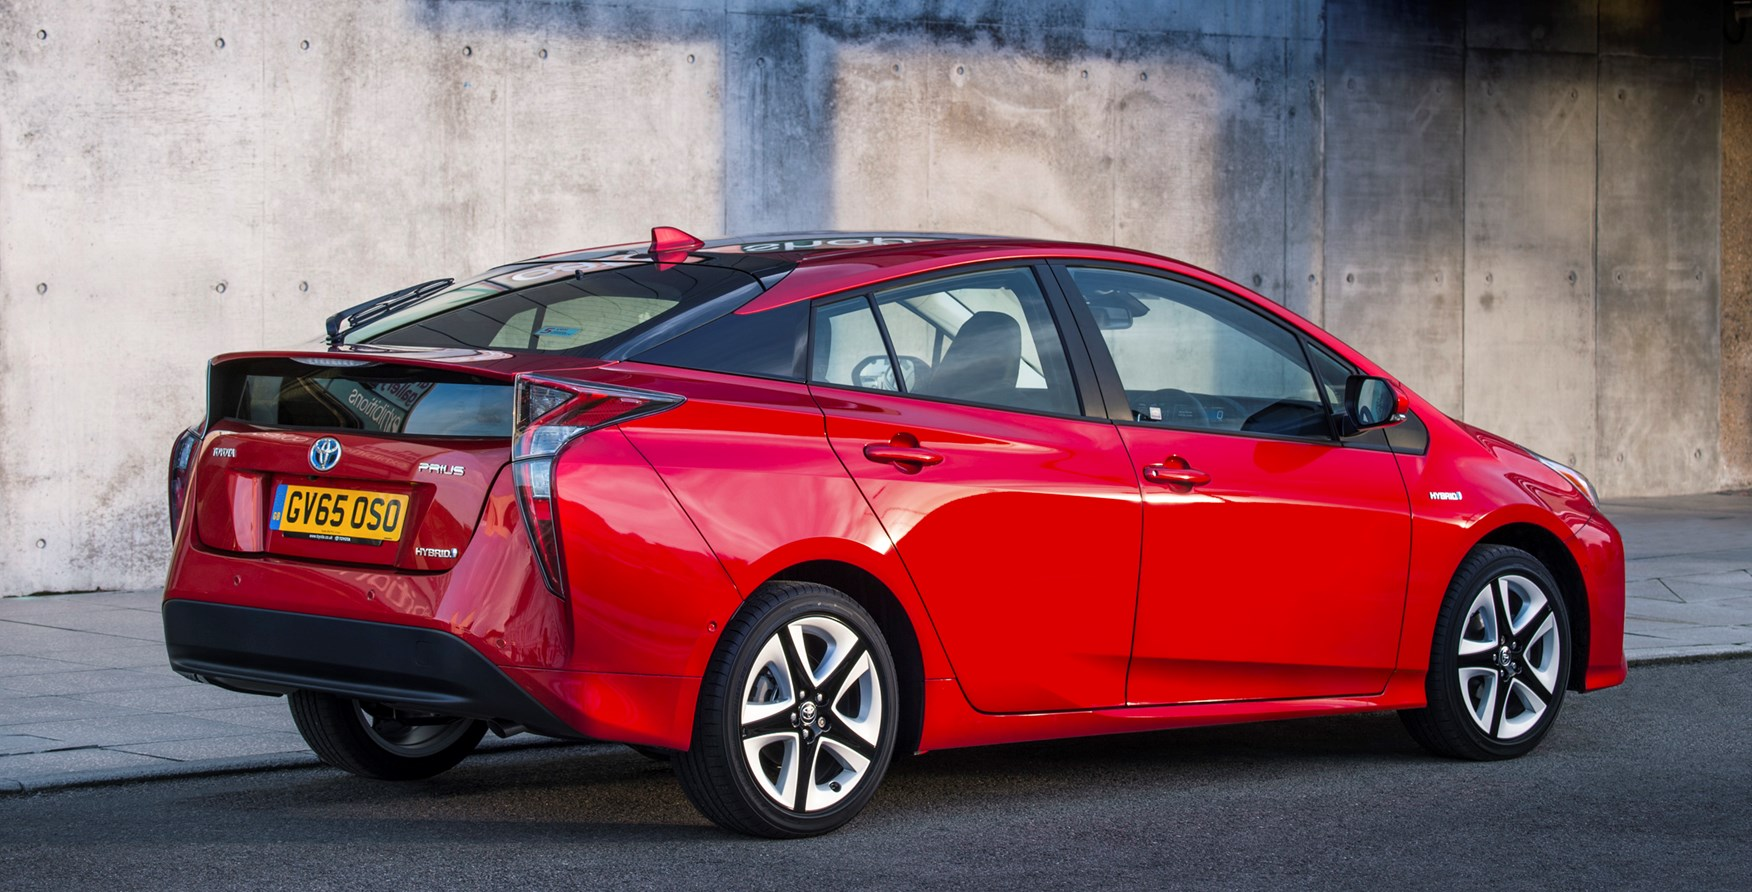 Toyota Company Latest Models >> Toyota Prius Hatchback (2015 - ) Photos | Parkers